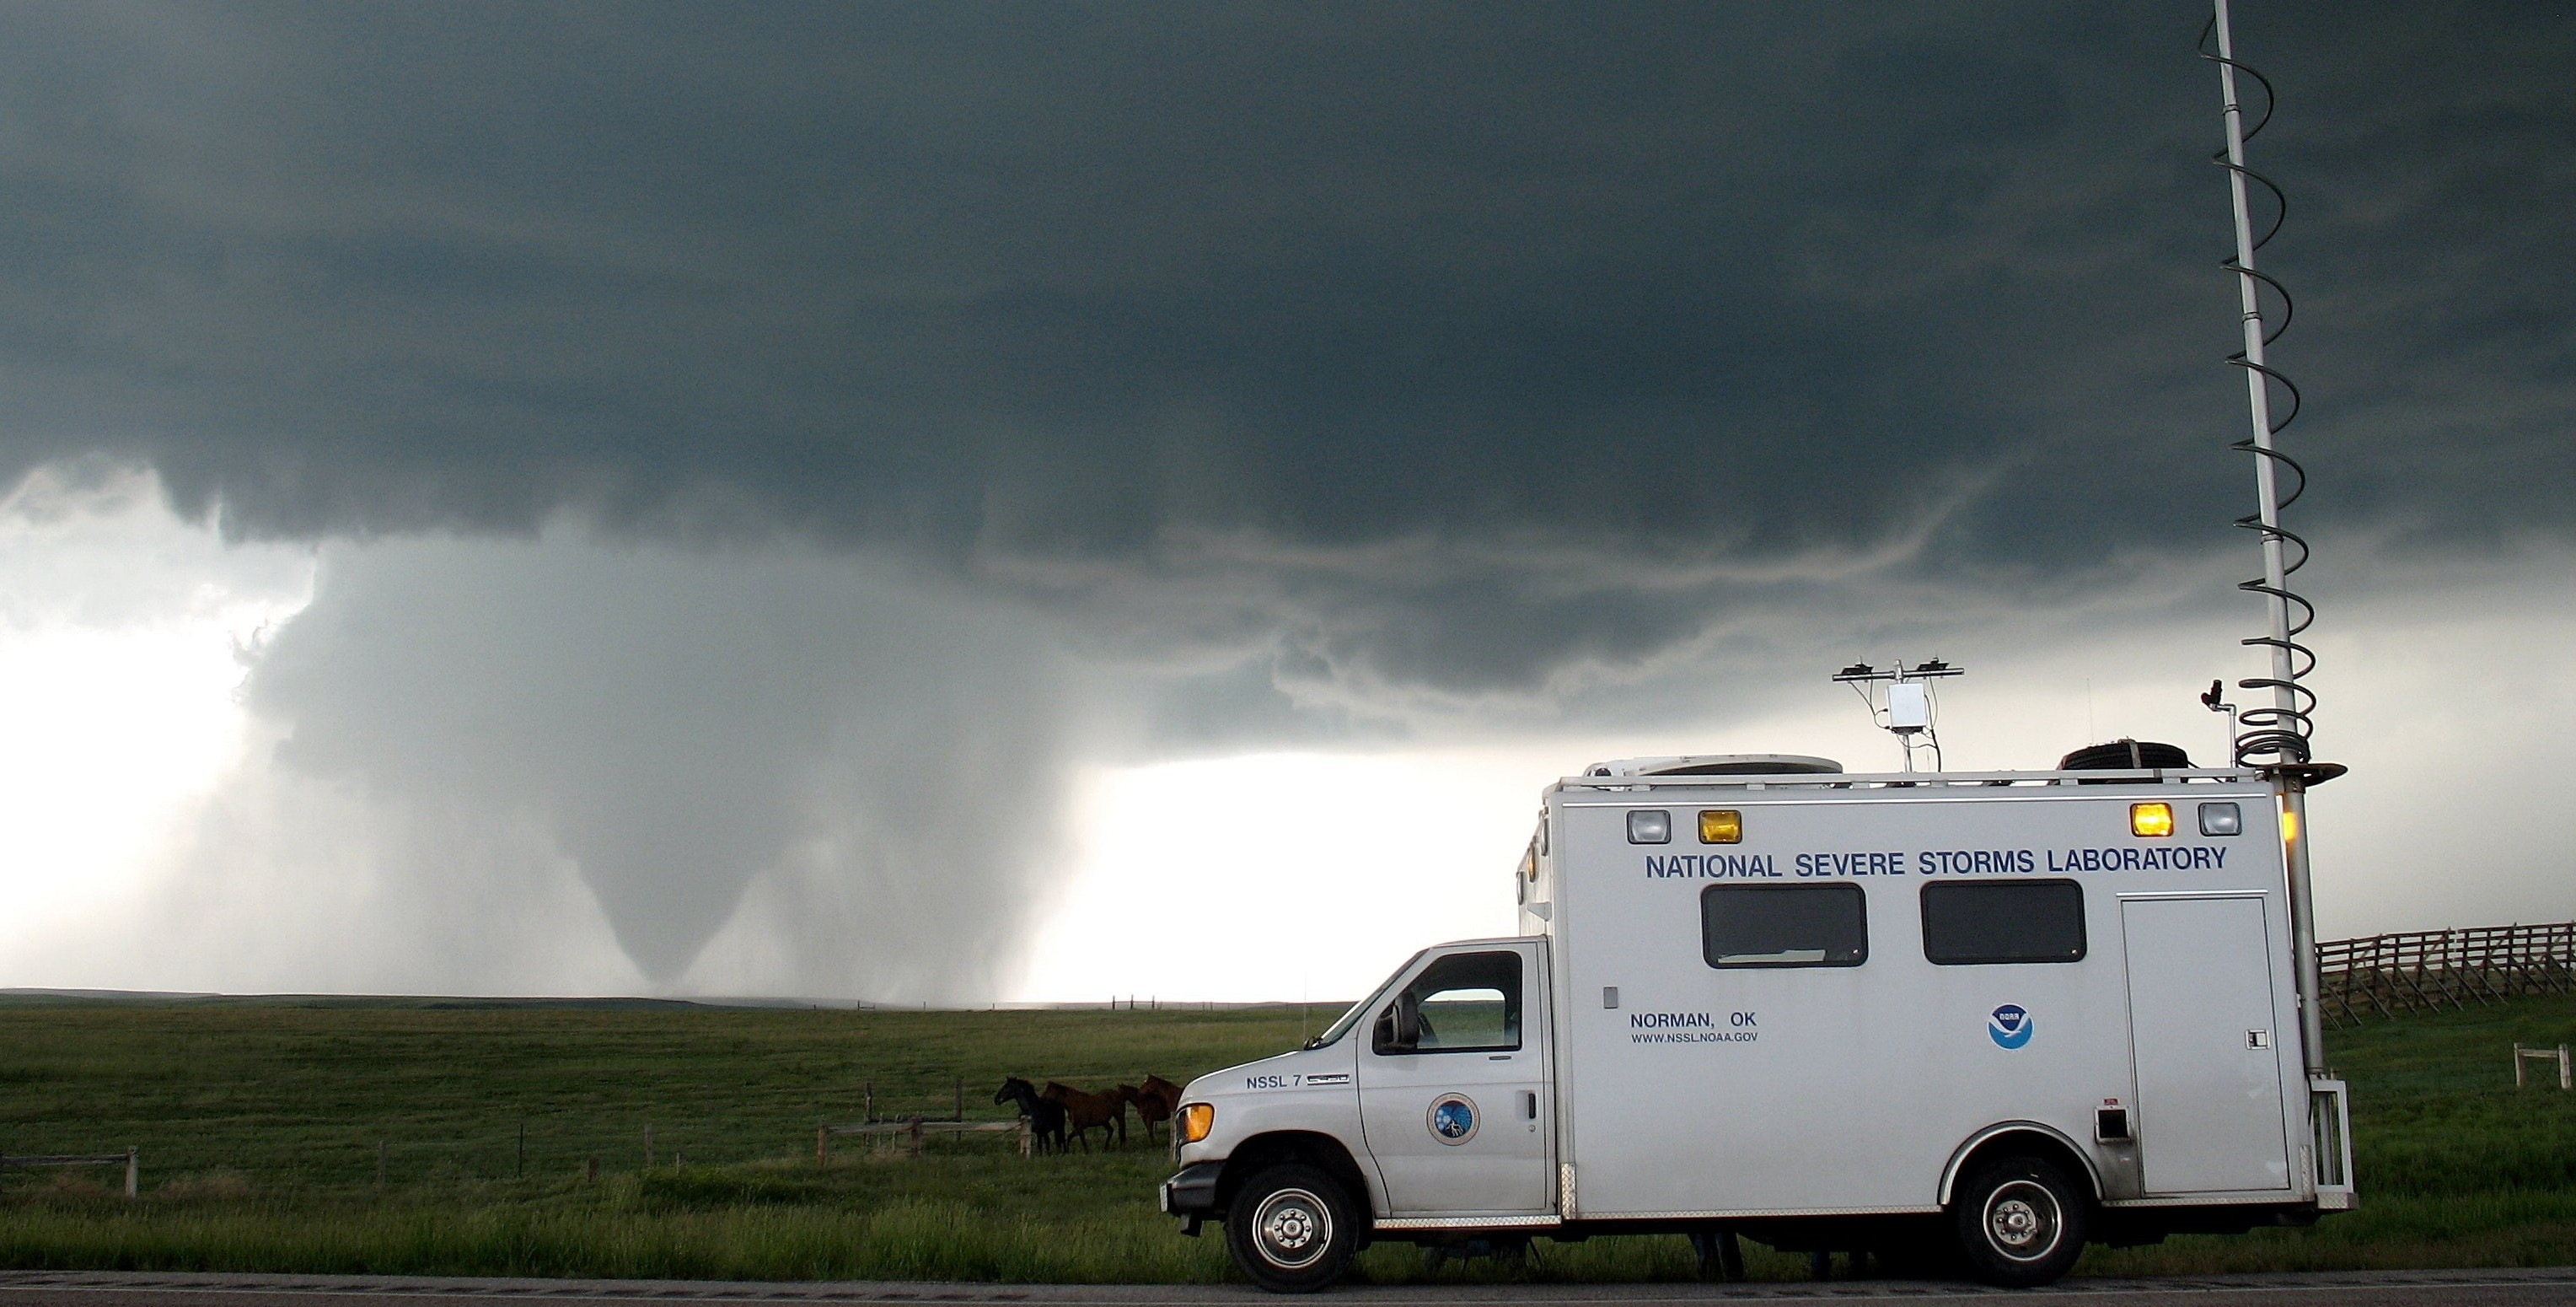 Nssl0311_-_Flickr_-_NOAA_Photo_Library